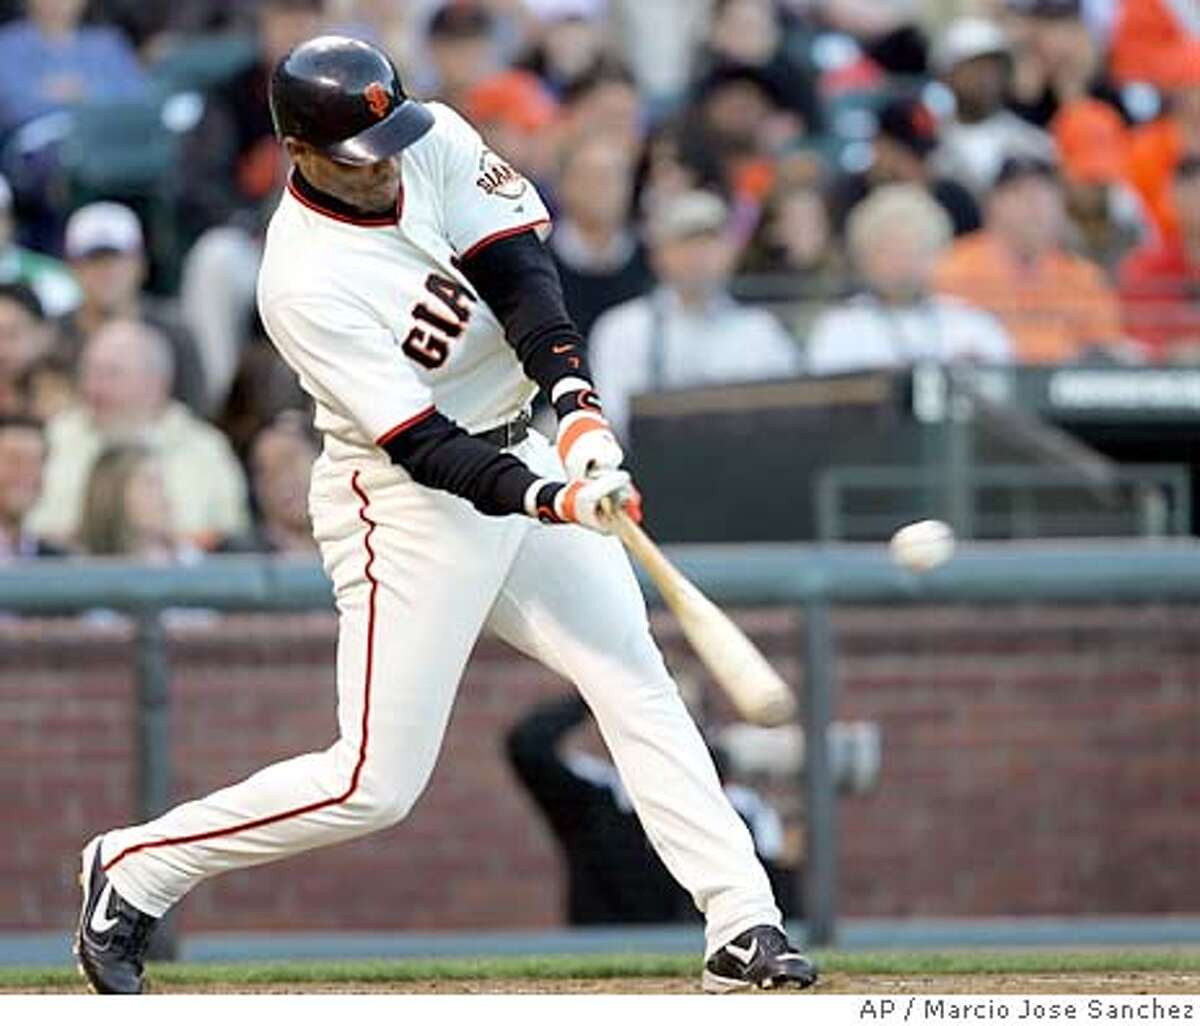 San Francisco Giants' Pedro Feliz drives in two-runs with a single off the Florida Marlins' Dontrelle Willis in the second inning on Friday, July 22, 2005 in San Francisco. (AP Photo/Marcio Jose Sanchez)